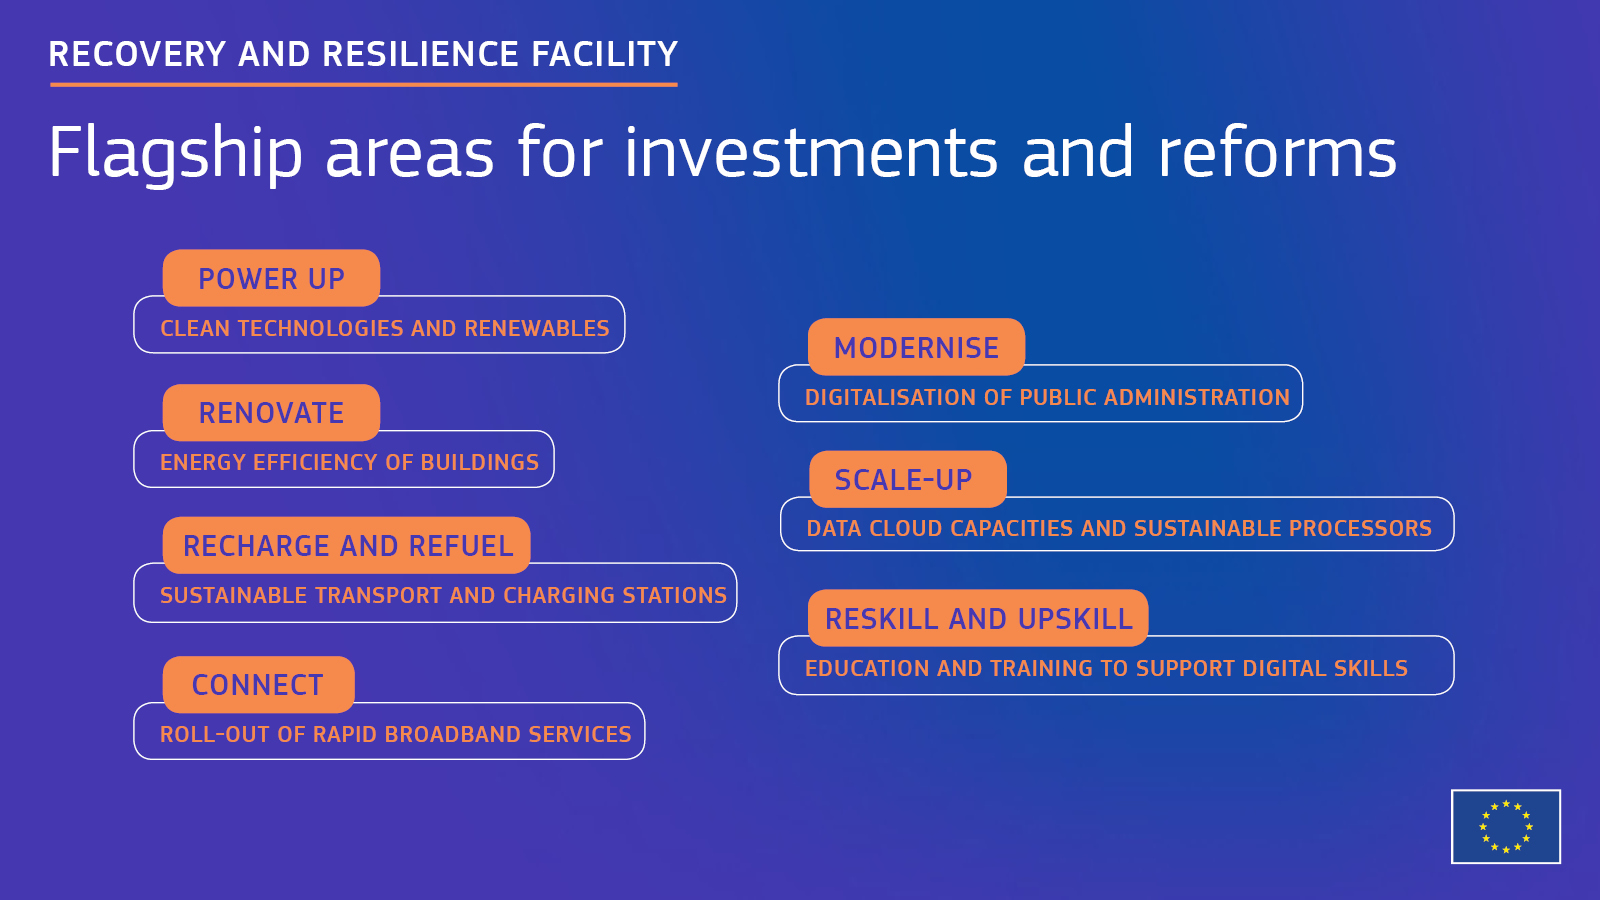 Flagship areas for investments and reforms